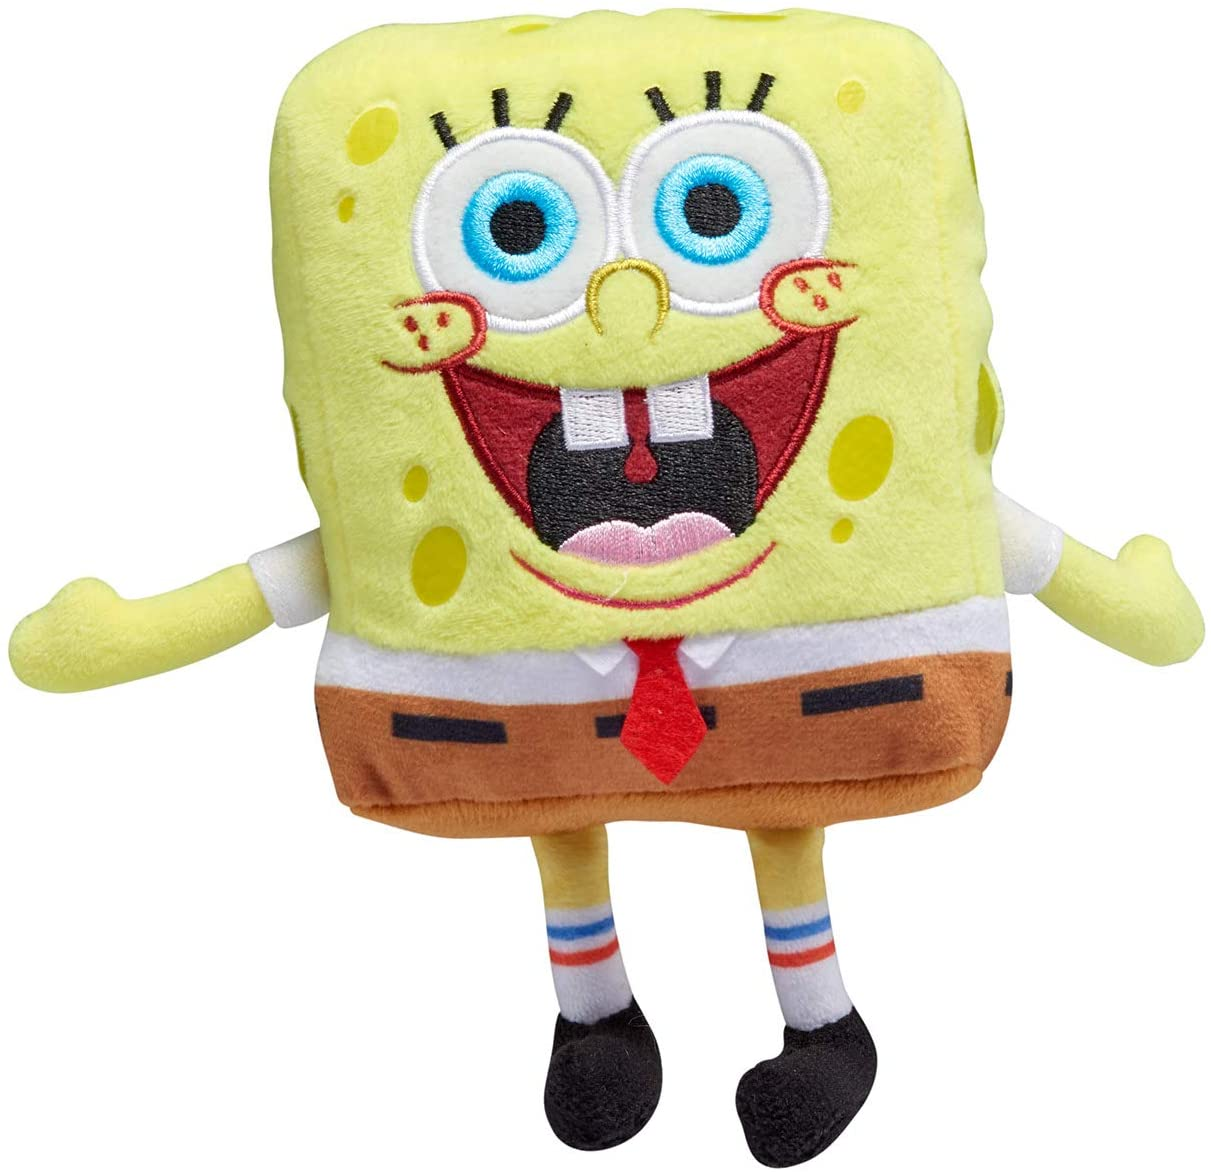 SpongeBob SquarePants Officially Licensed Mini Plush Tall, (US690501)